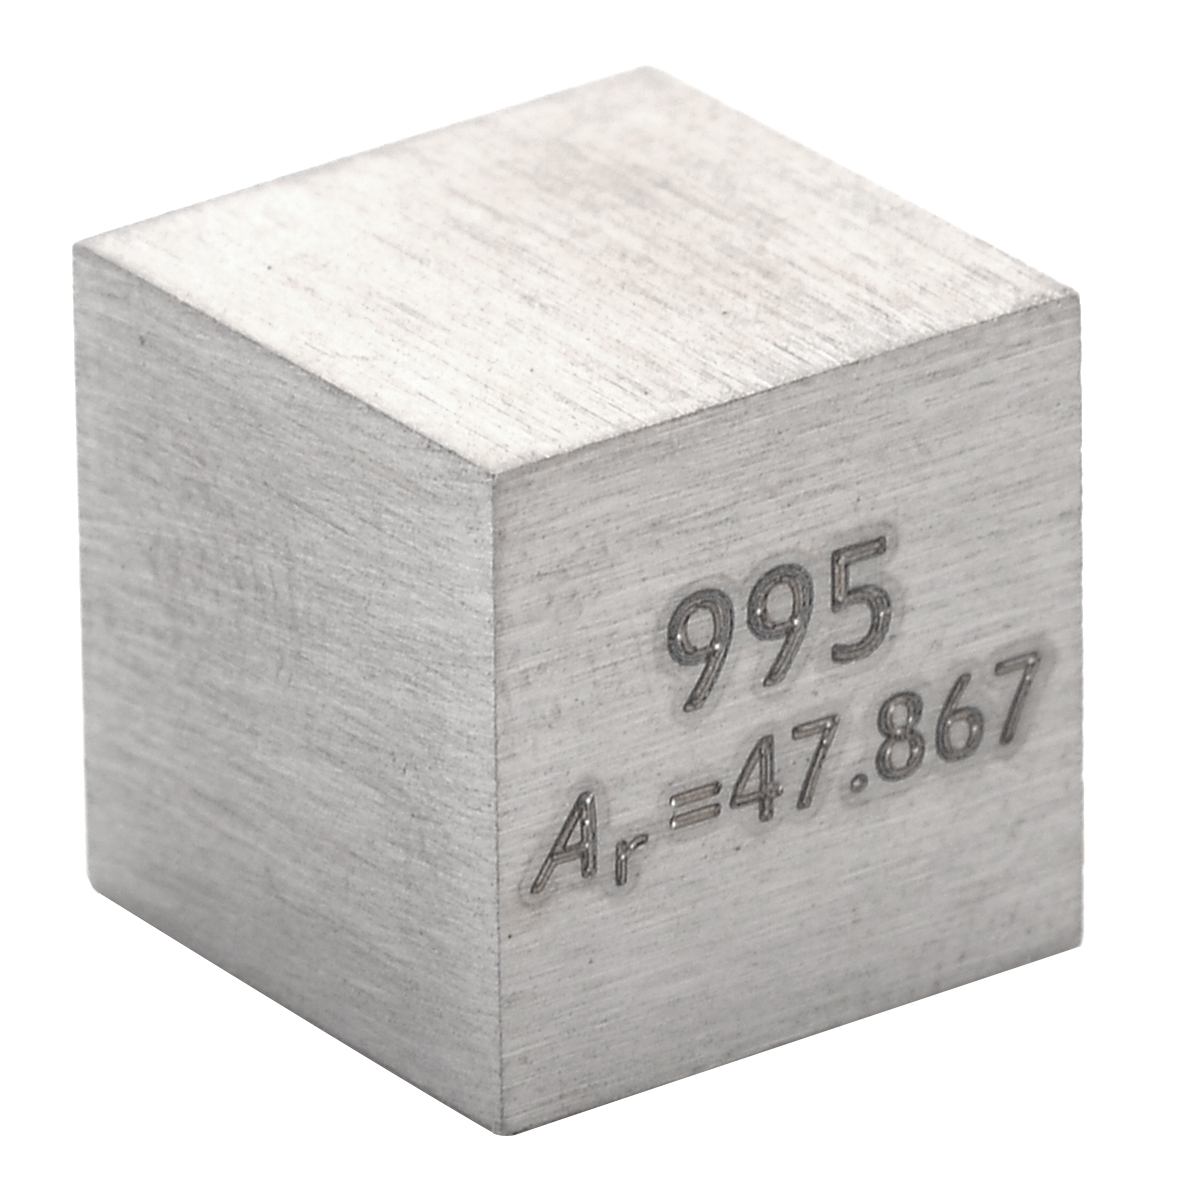 Image 5 - 1pc 99.5% Pure Titanium High Purity Cube Ti Metal Carved Element Periodic Table Craft Wonderful Collection 10*10*10mm-in Tool Parts from Tools